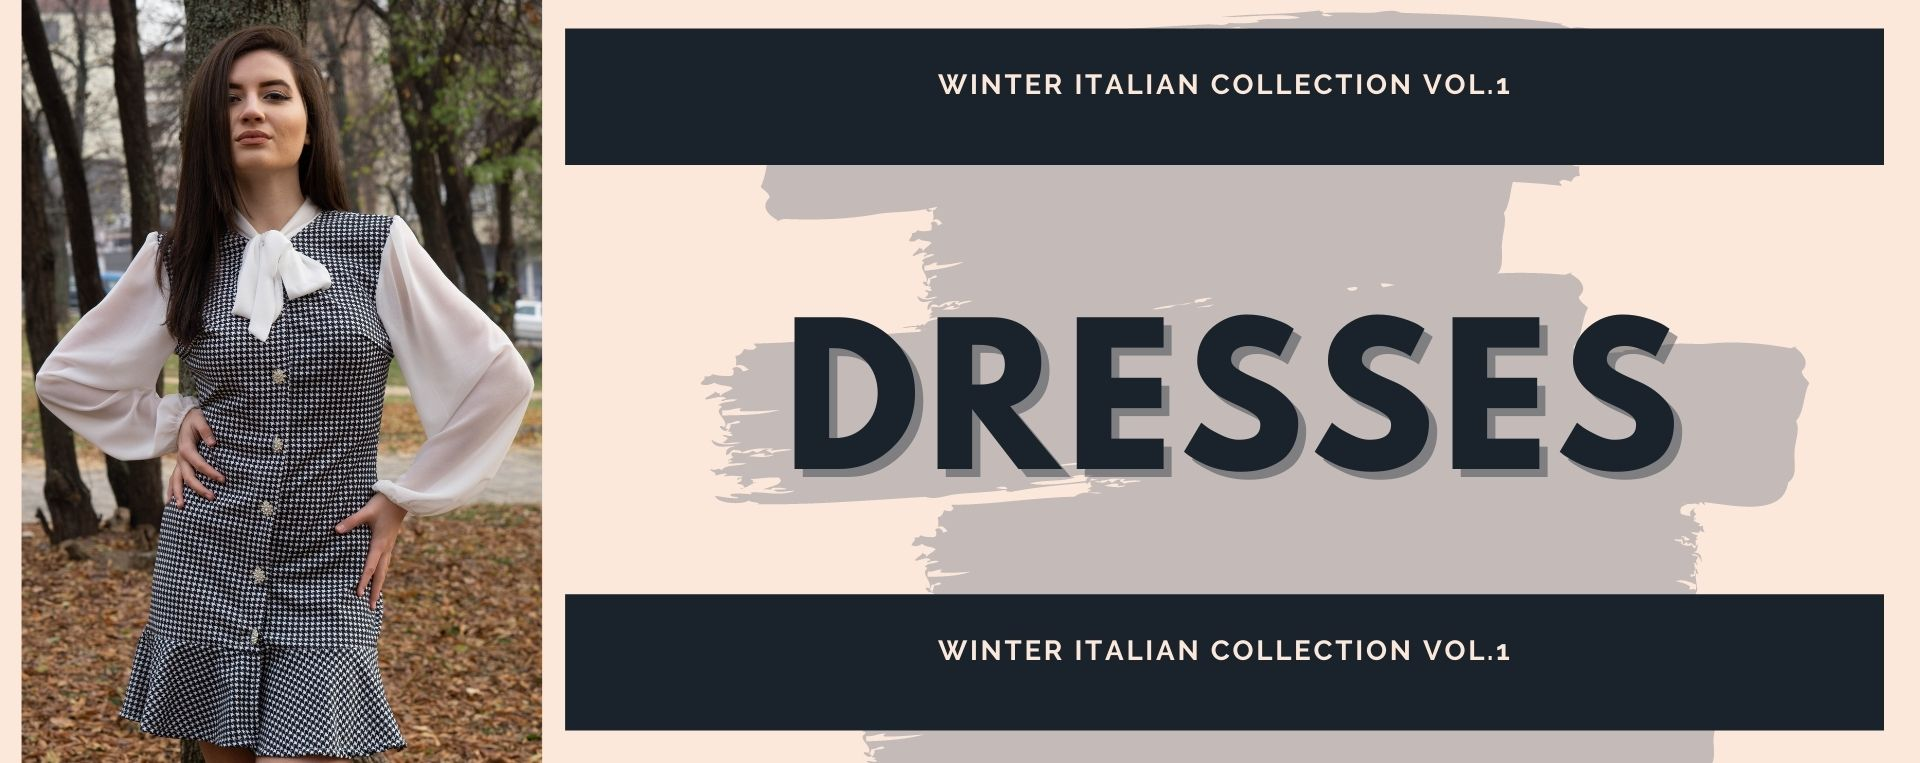 Dresses from the winter italian collection